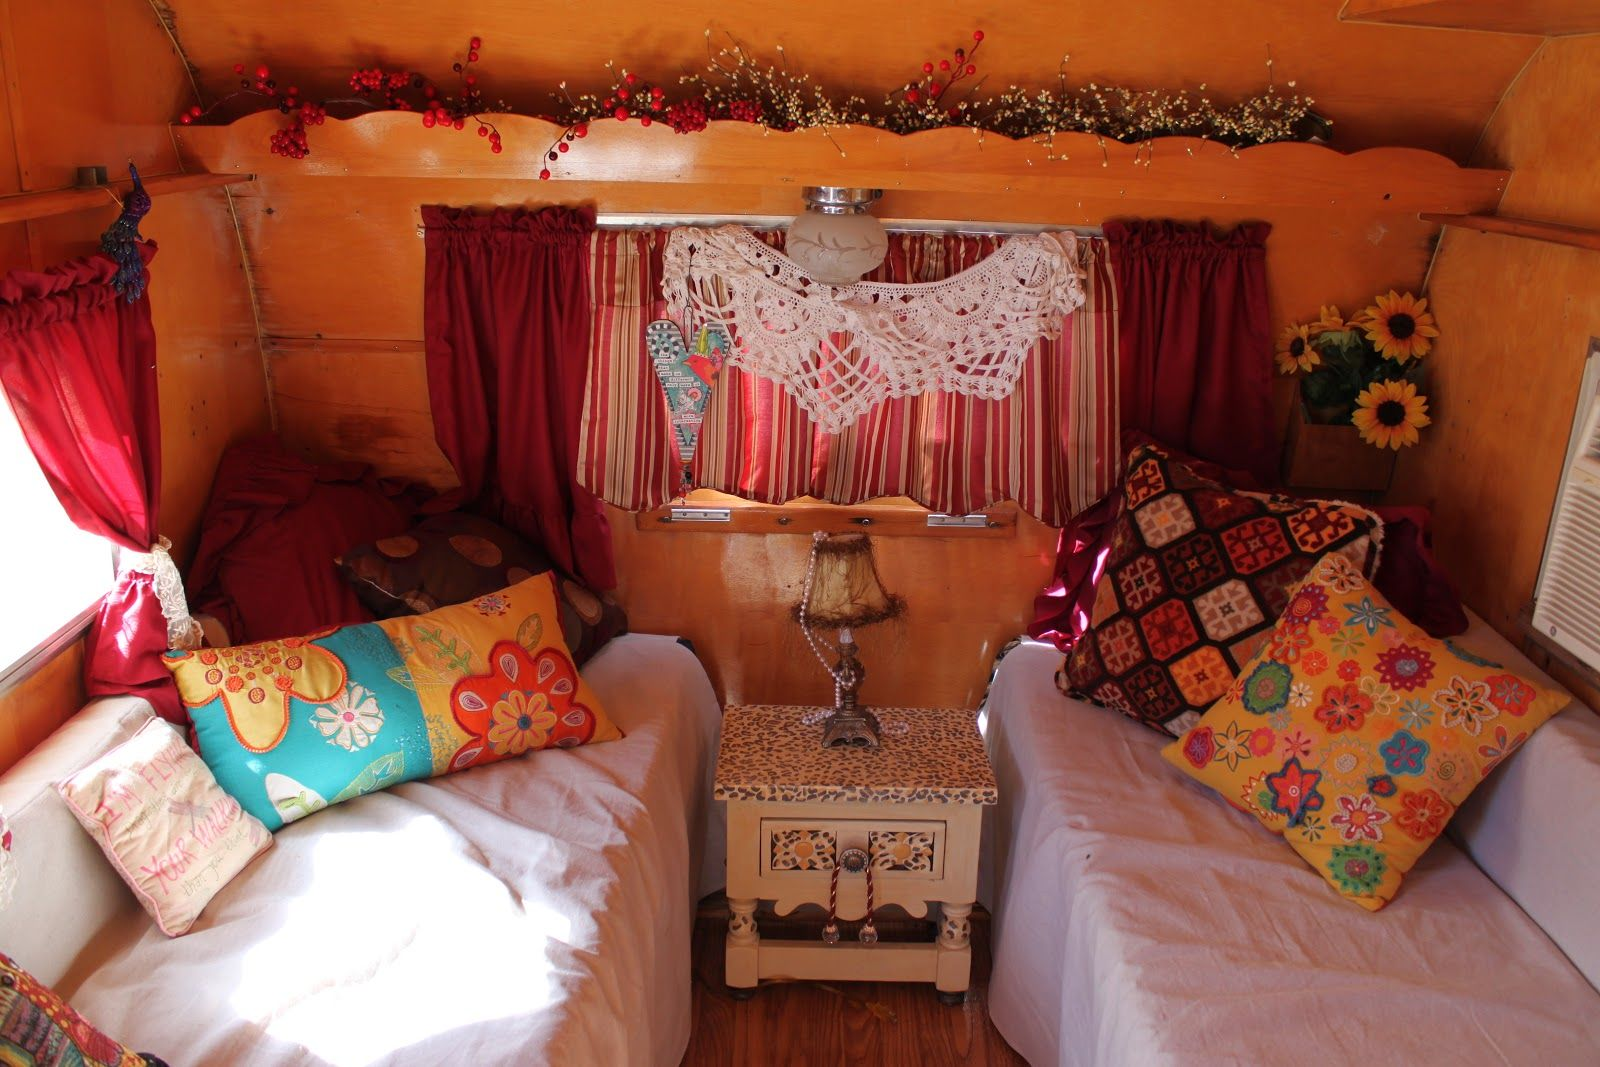 Passions of an Odd Chick: Gypsy Wagon